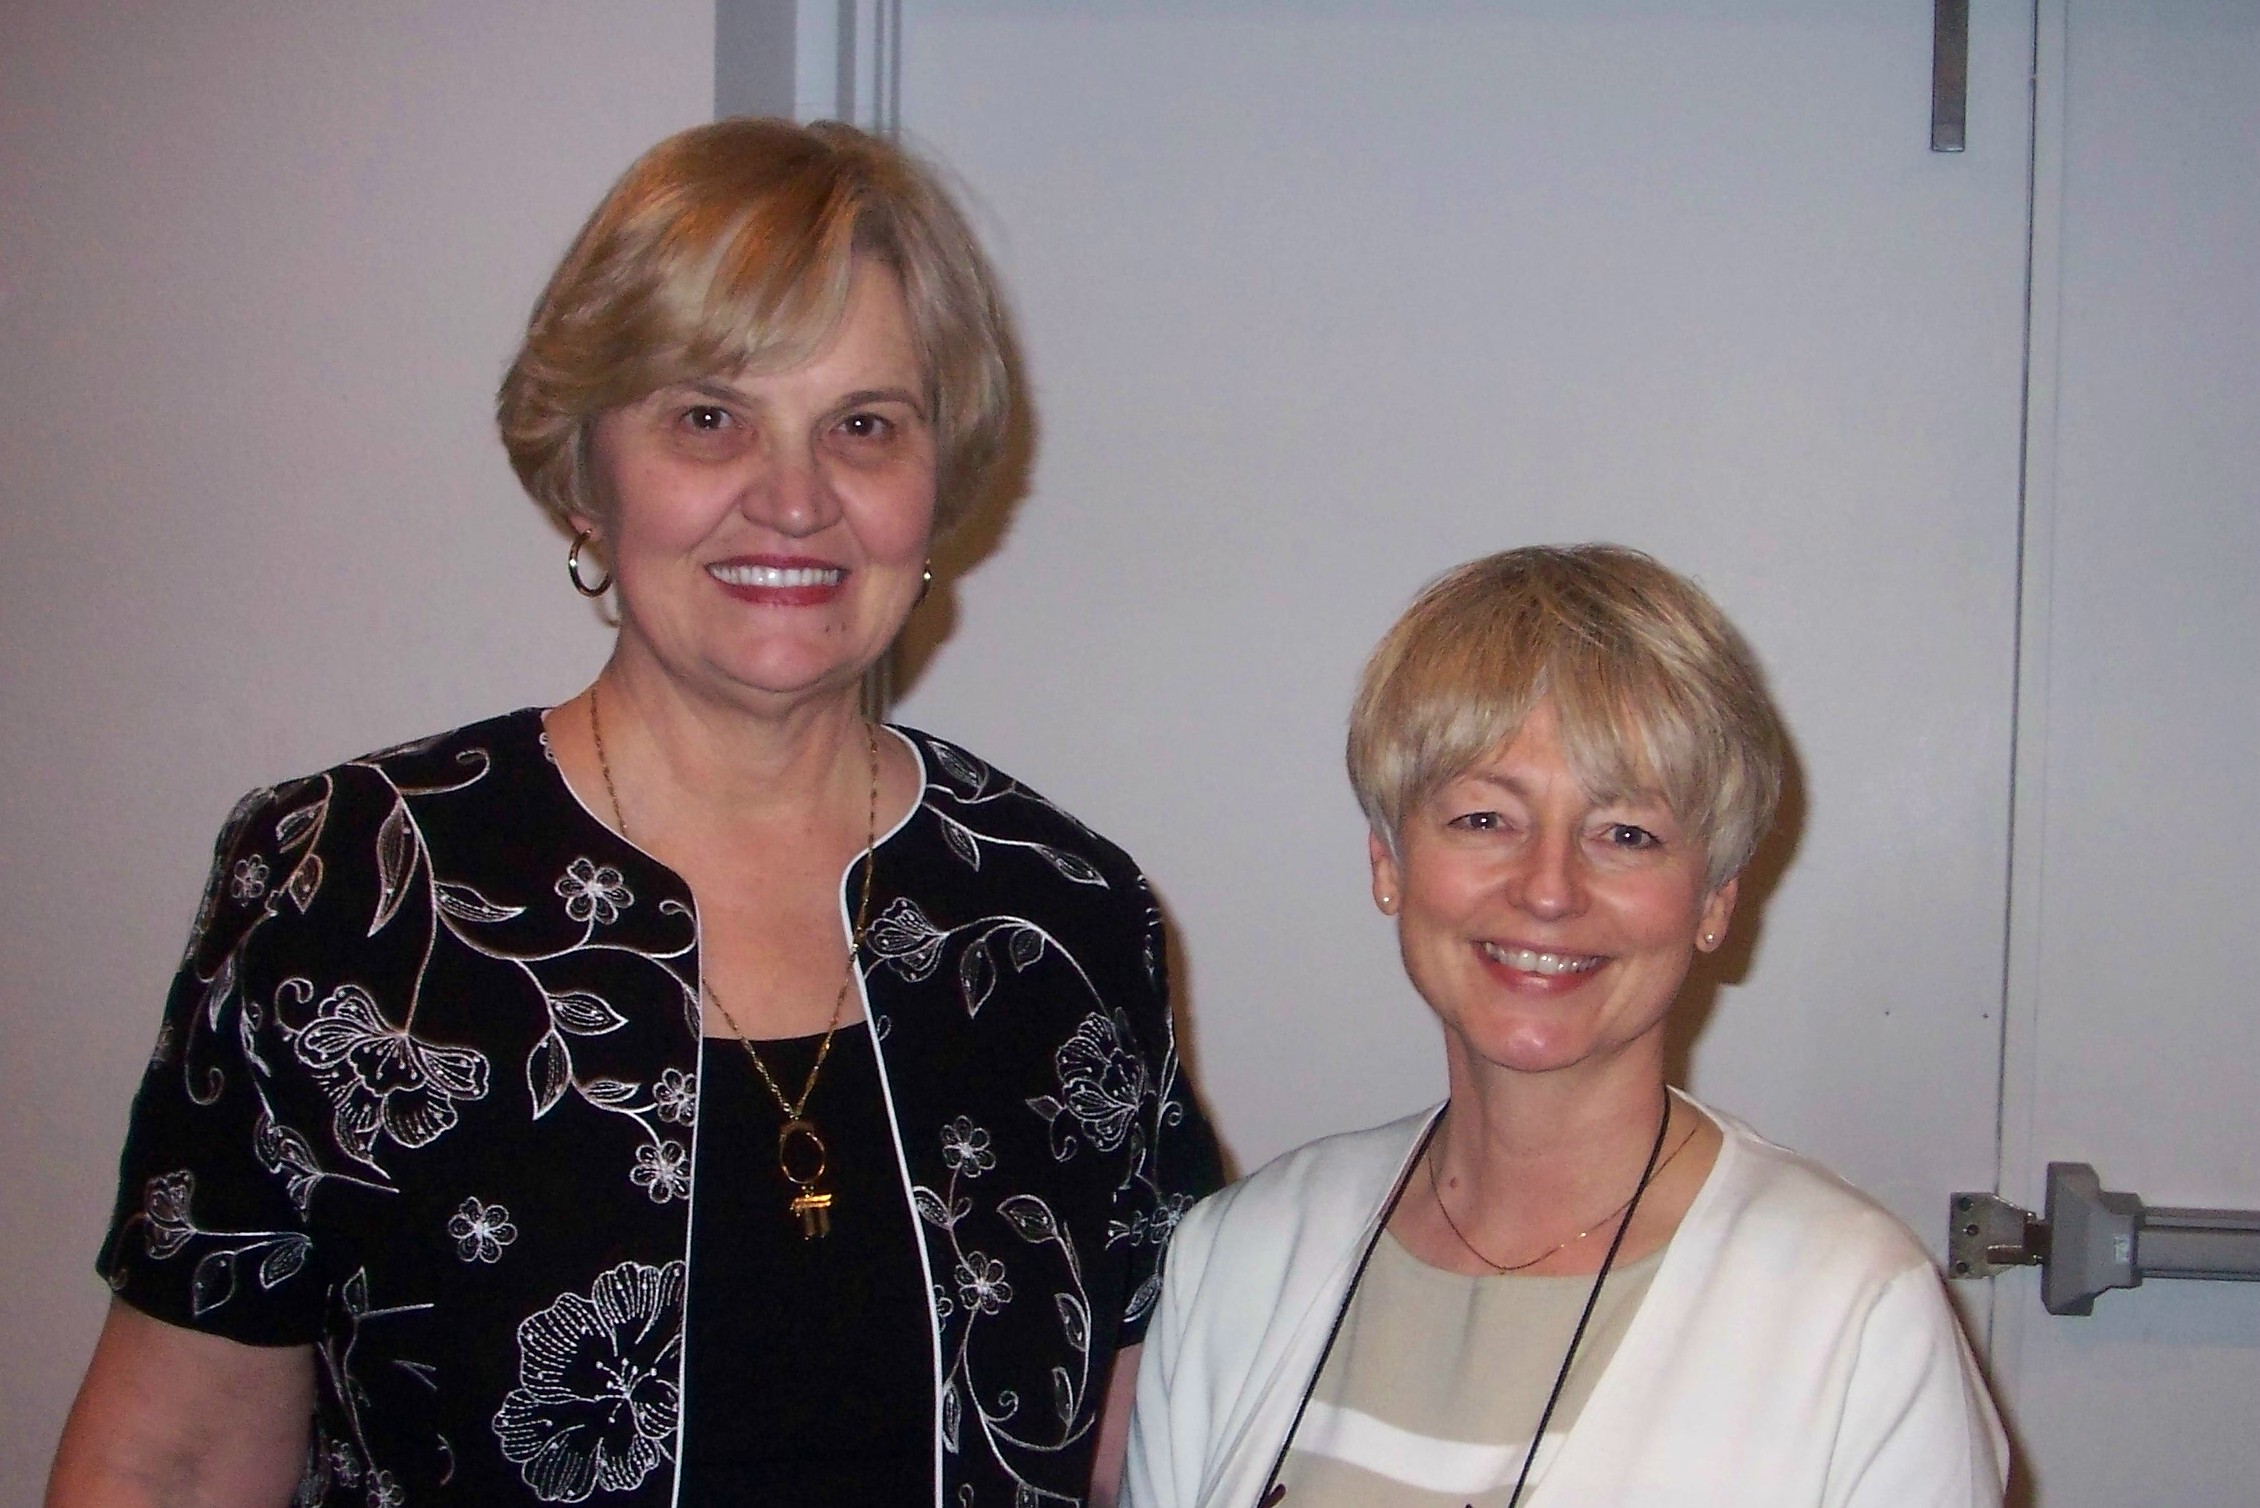 Jewel Grewe and myself at the conference in Spring Hill, Florida.